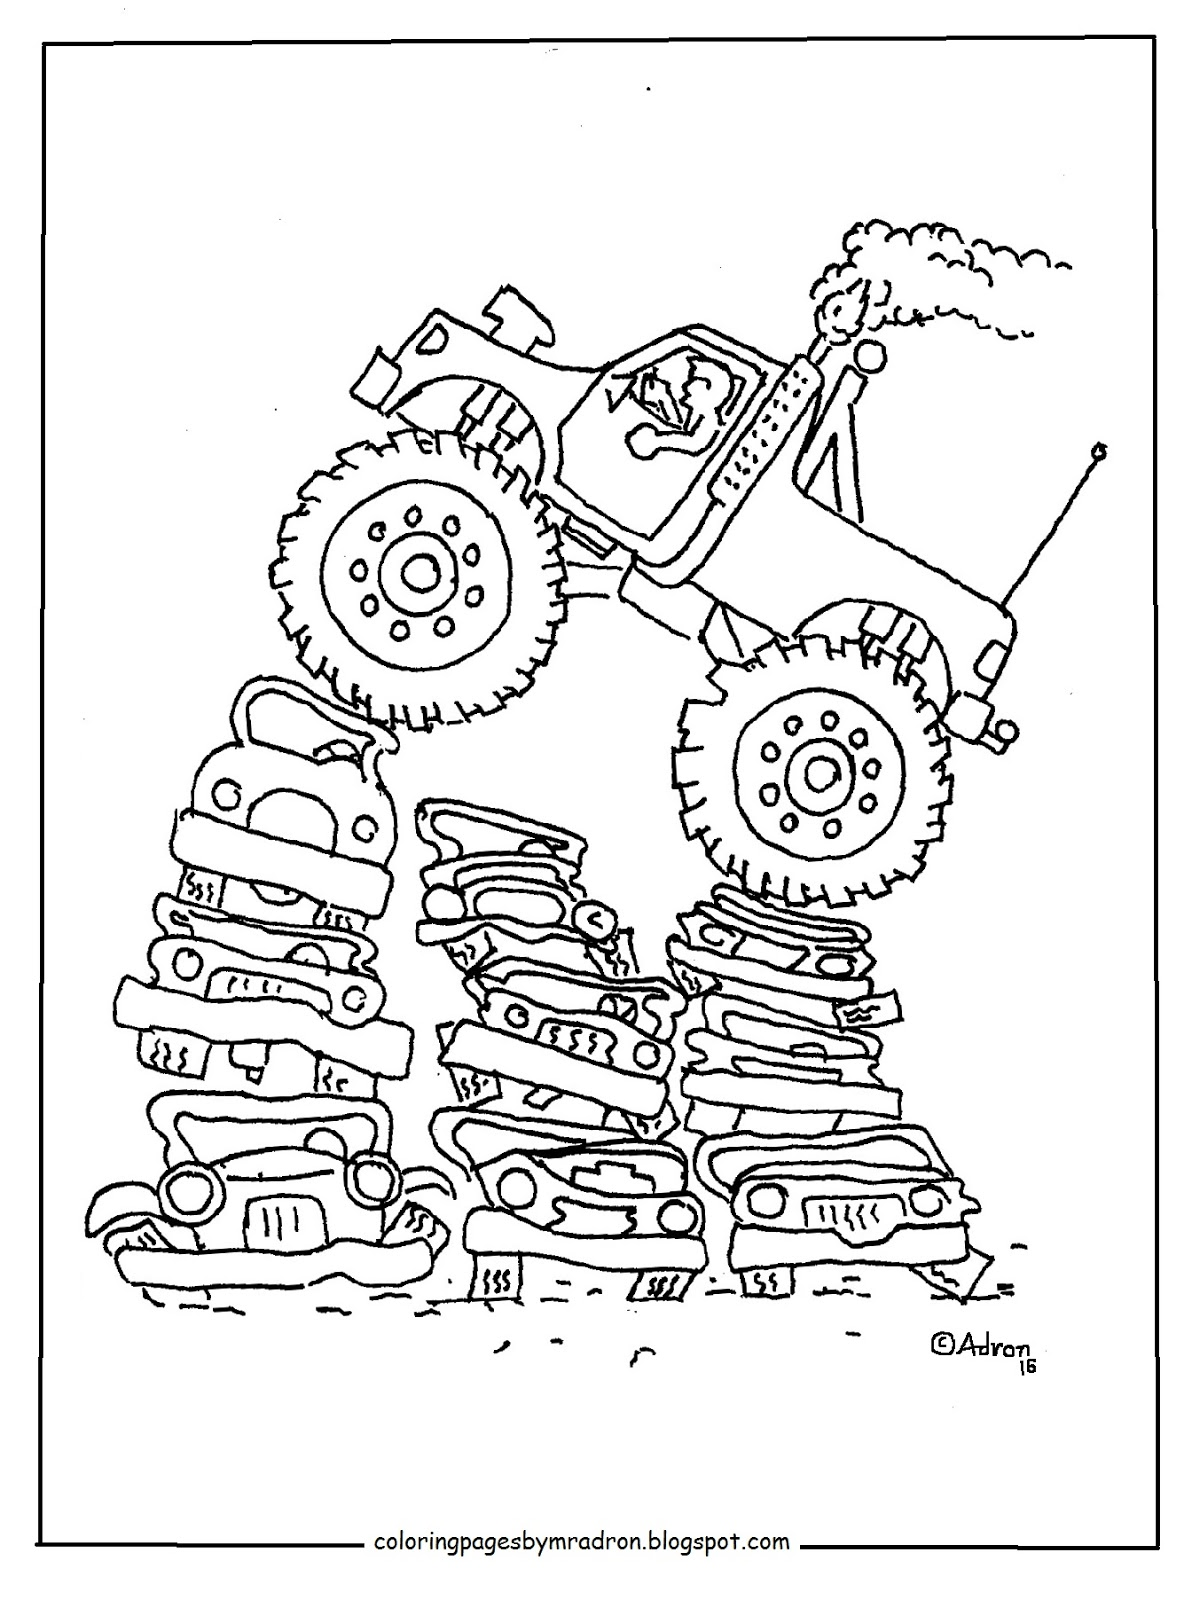 Coloring Pages for Kids by Mr. Adron: Printable Monster Truck Coloring  Free Download